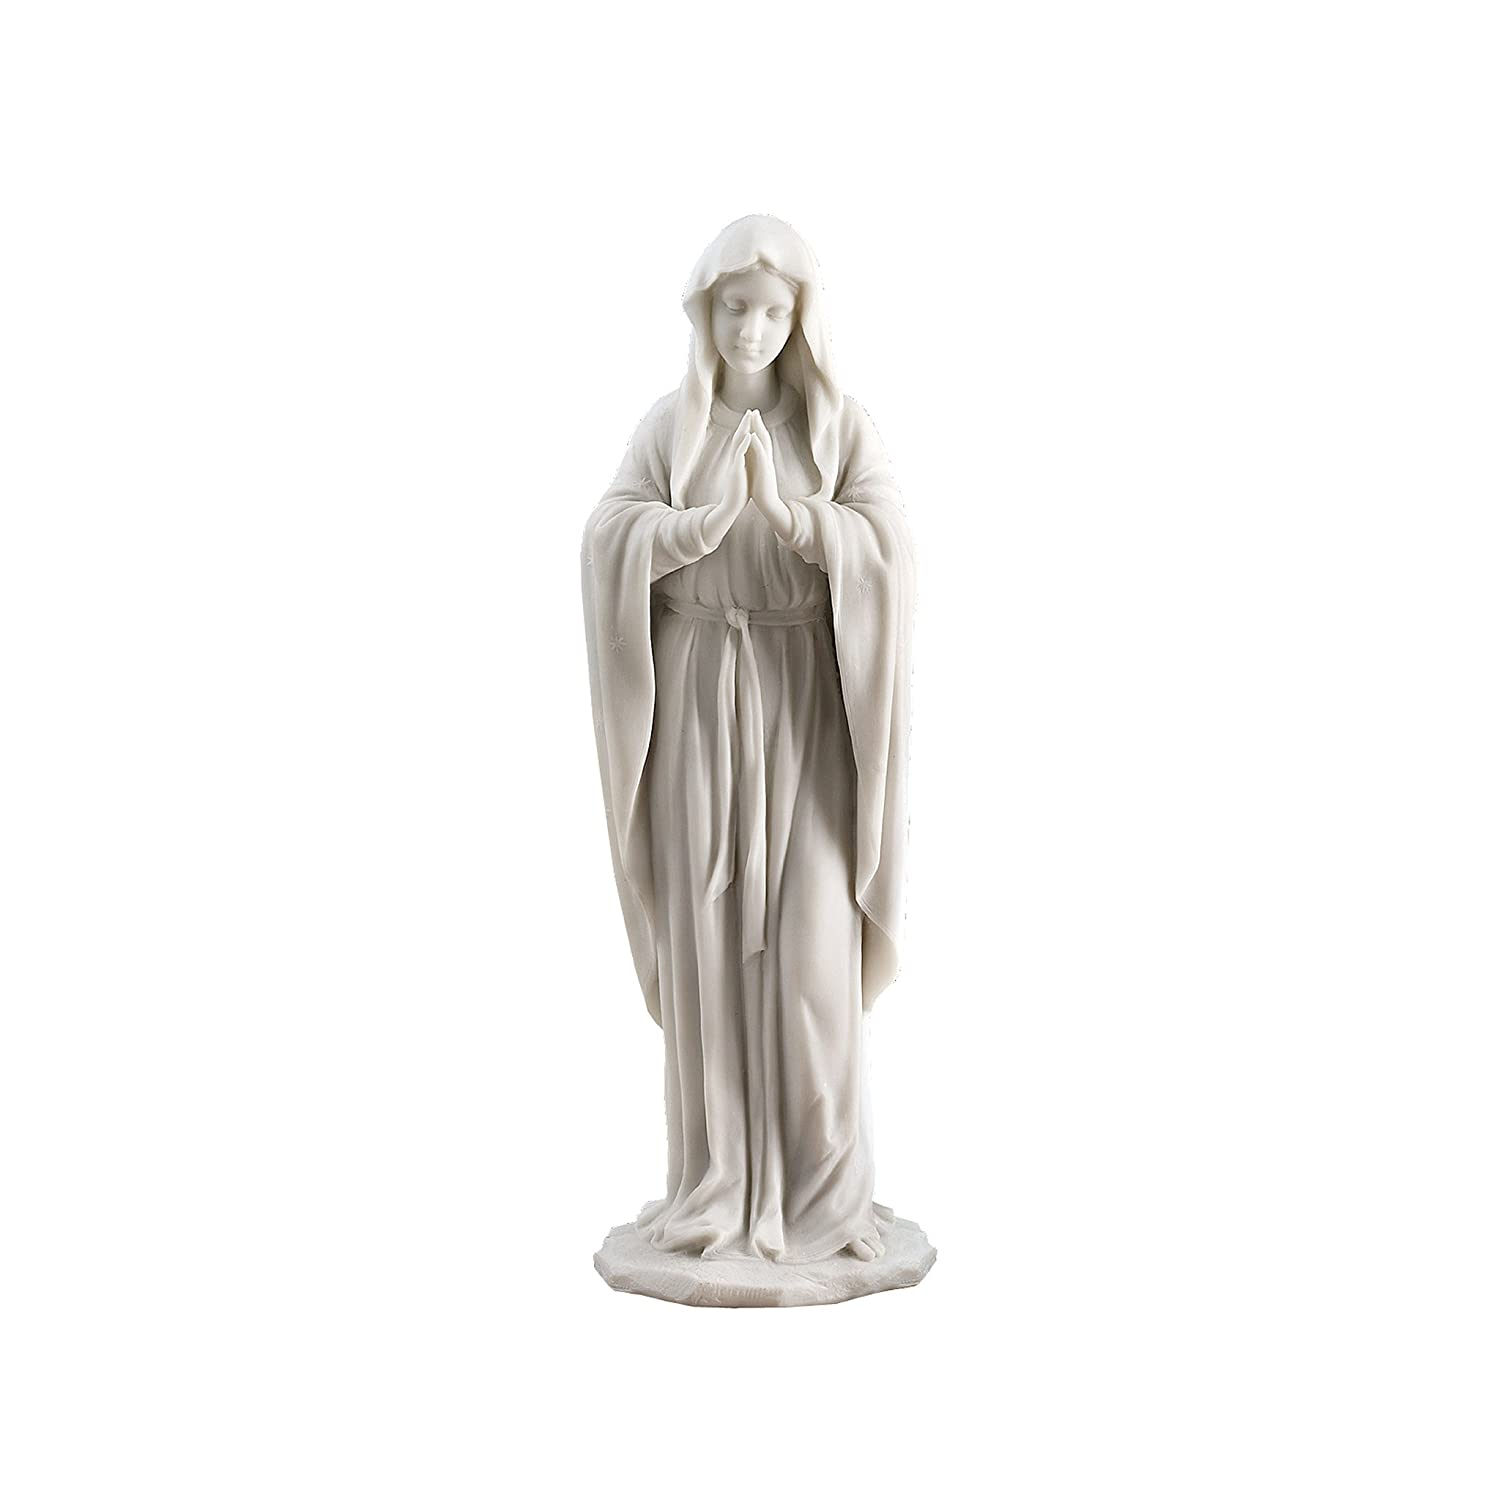 Design Toscano Virgin Mary the Blessed Mother of the Immaculate Conception Religious Garden Statue,58.5 cm, Polyresin, Full Color Interpet Ltd KY53061